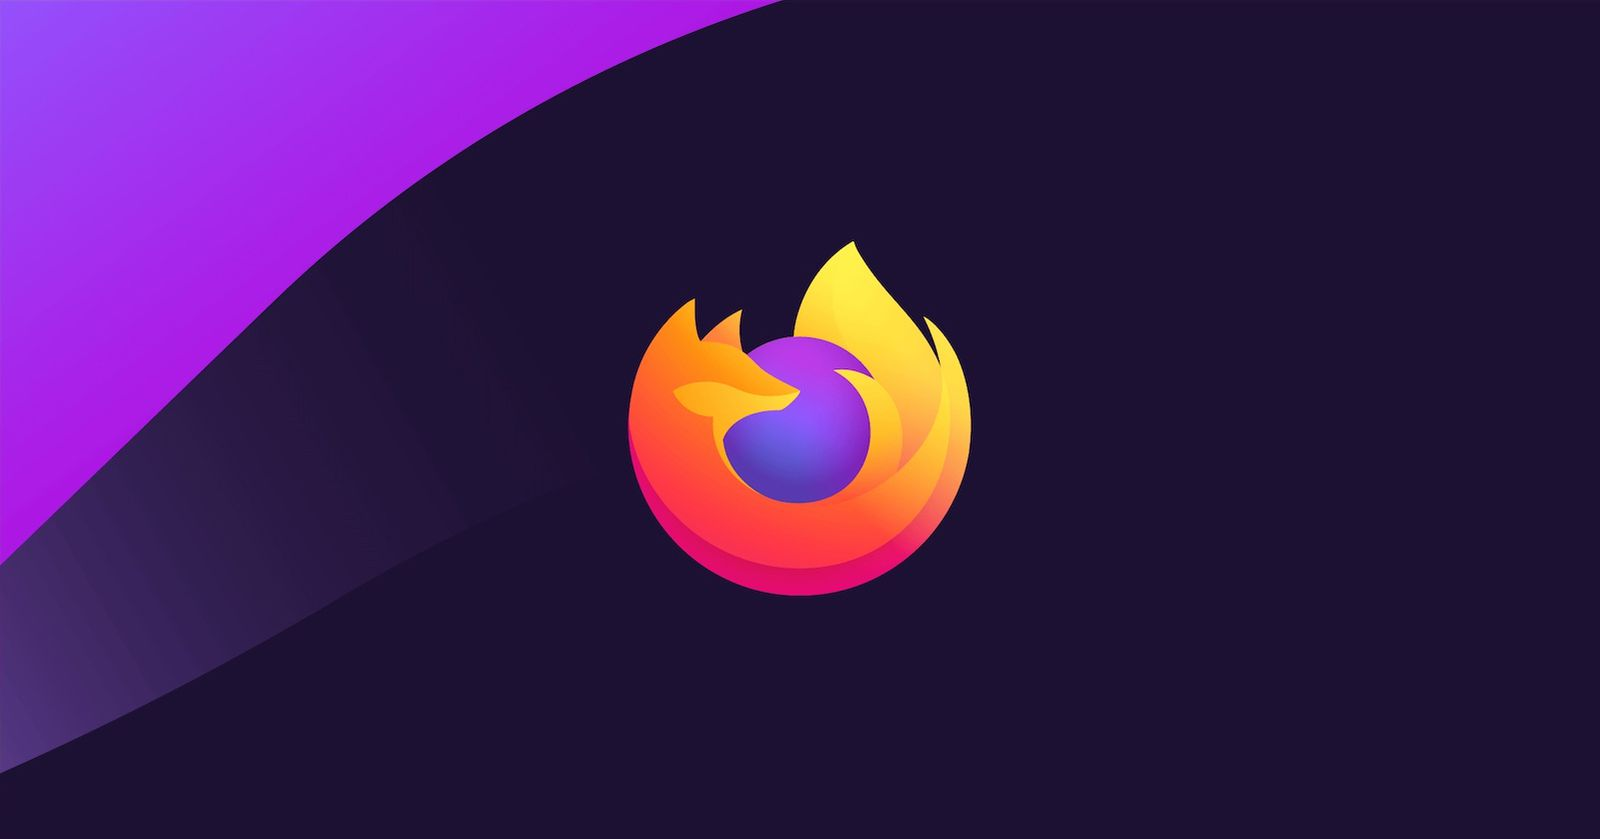 Firefox 91 Update Strengthens Online Privacy With Enhanced Cookie Protection